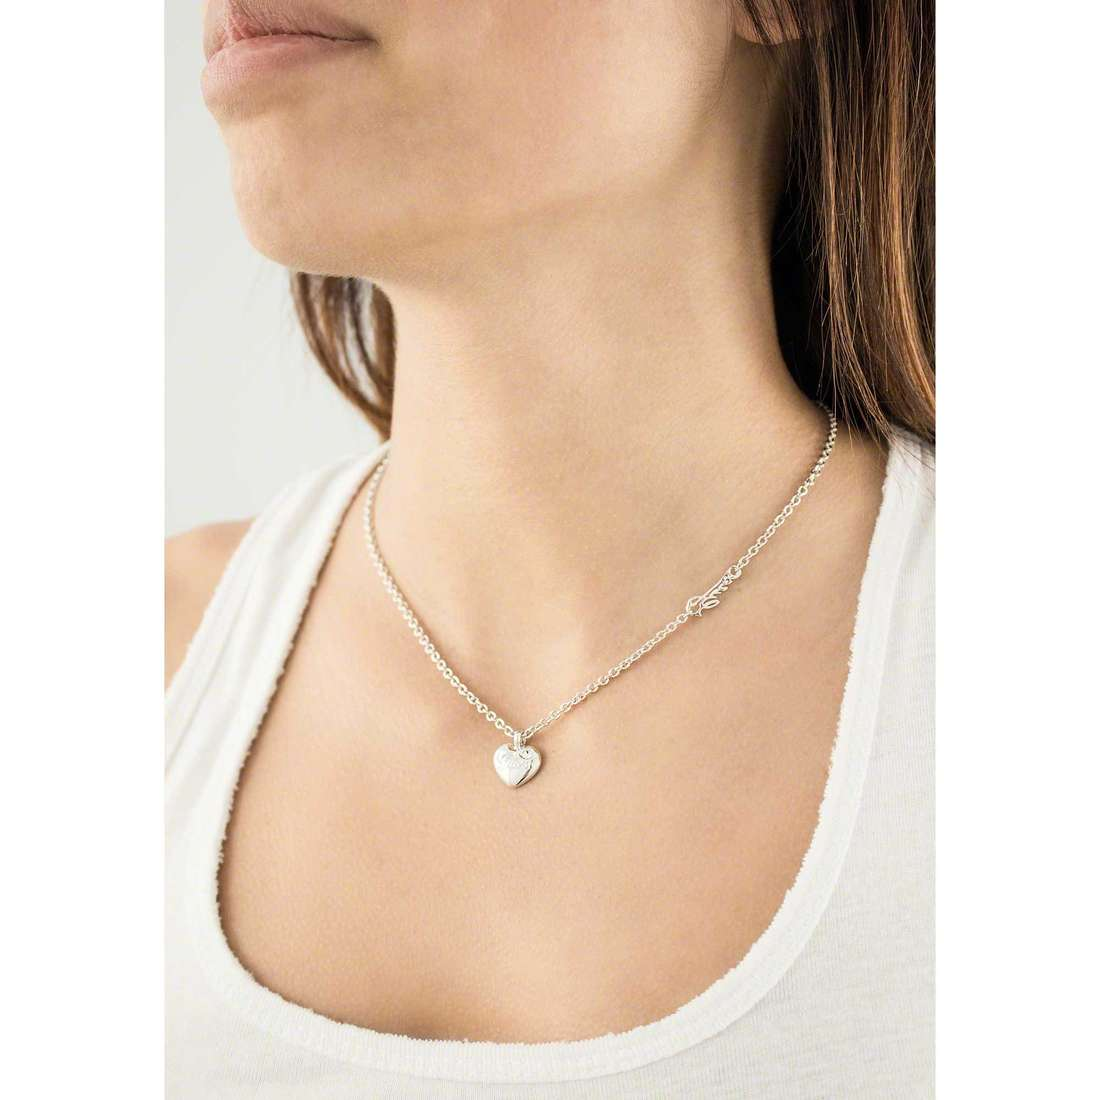 Guess necklaces Iconic woman UBN21526 indosso